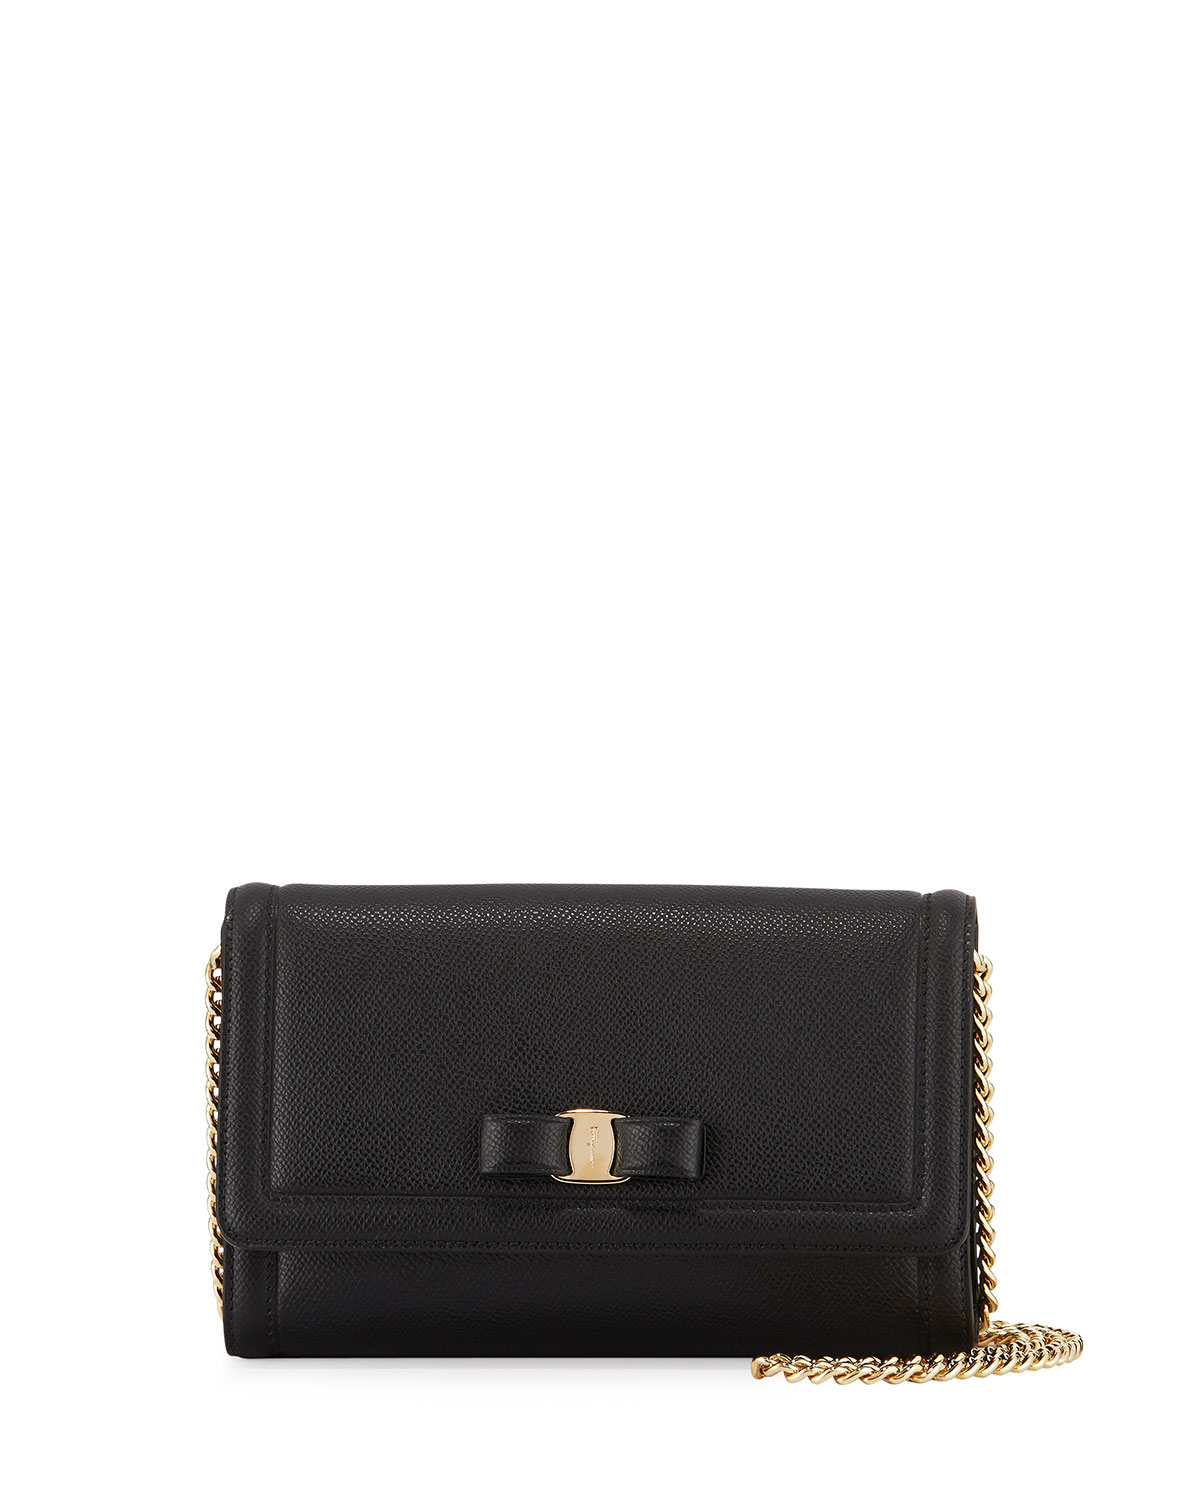 d1a267d77b Salvatore Ferragamo Vara Mini Saffiano Crossbody Bag